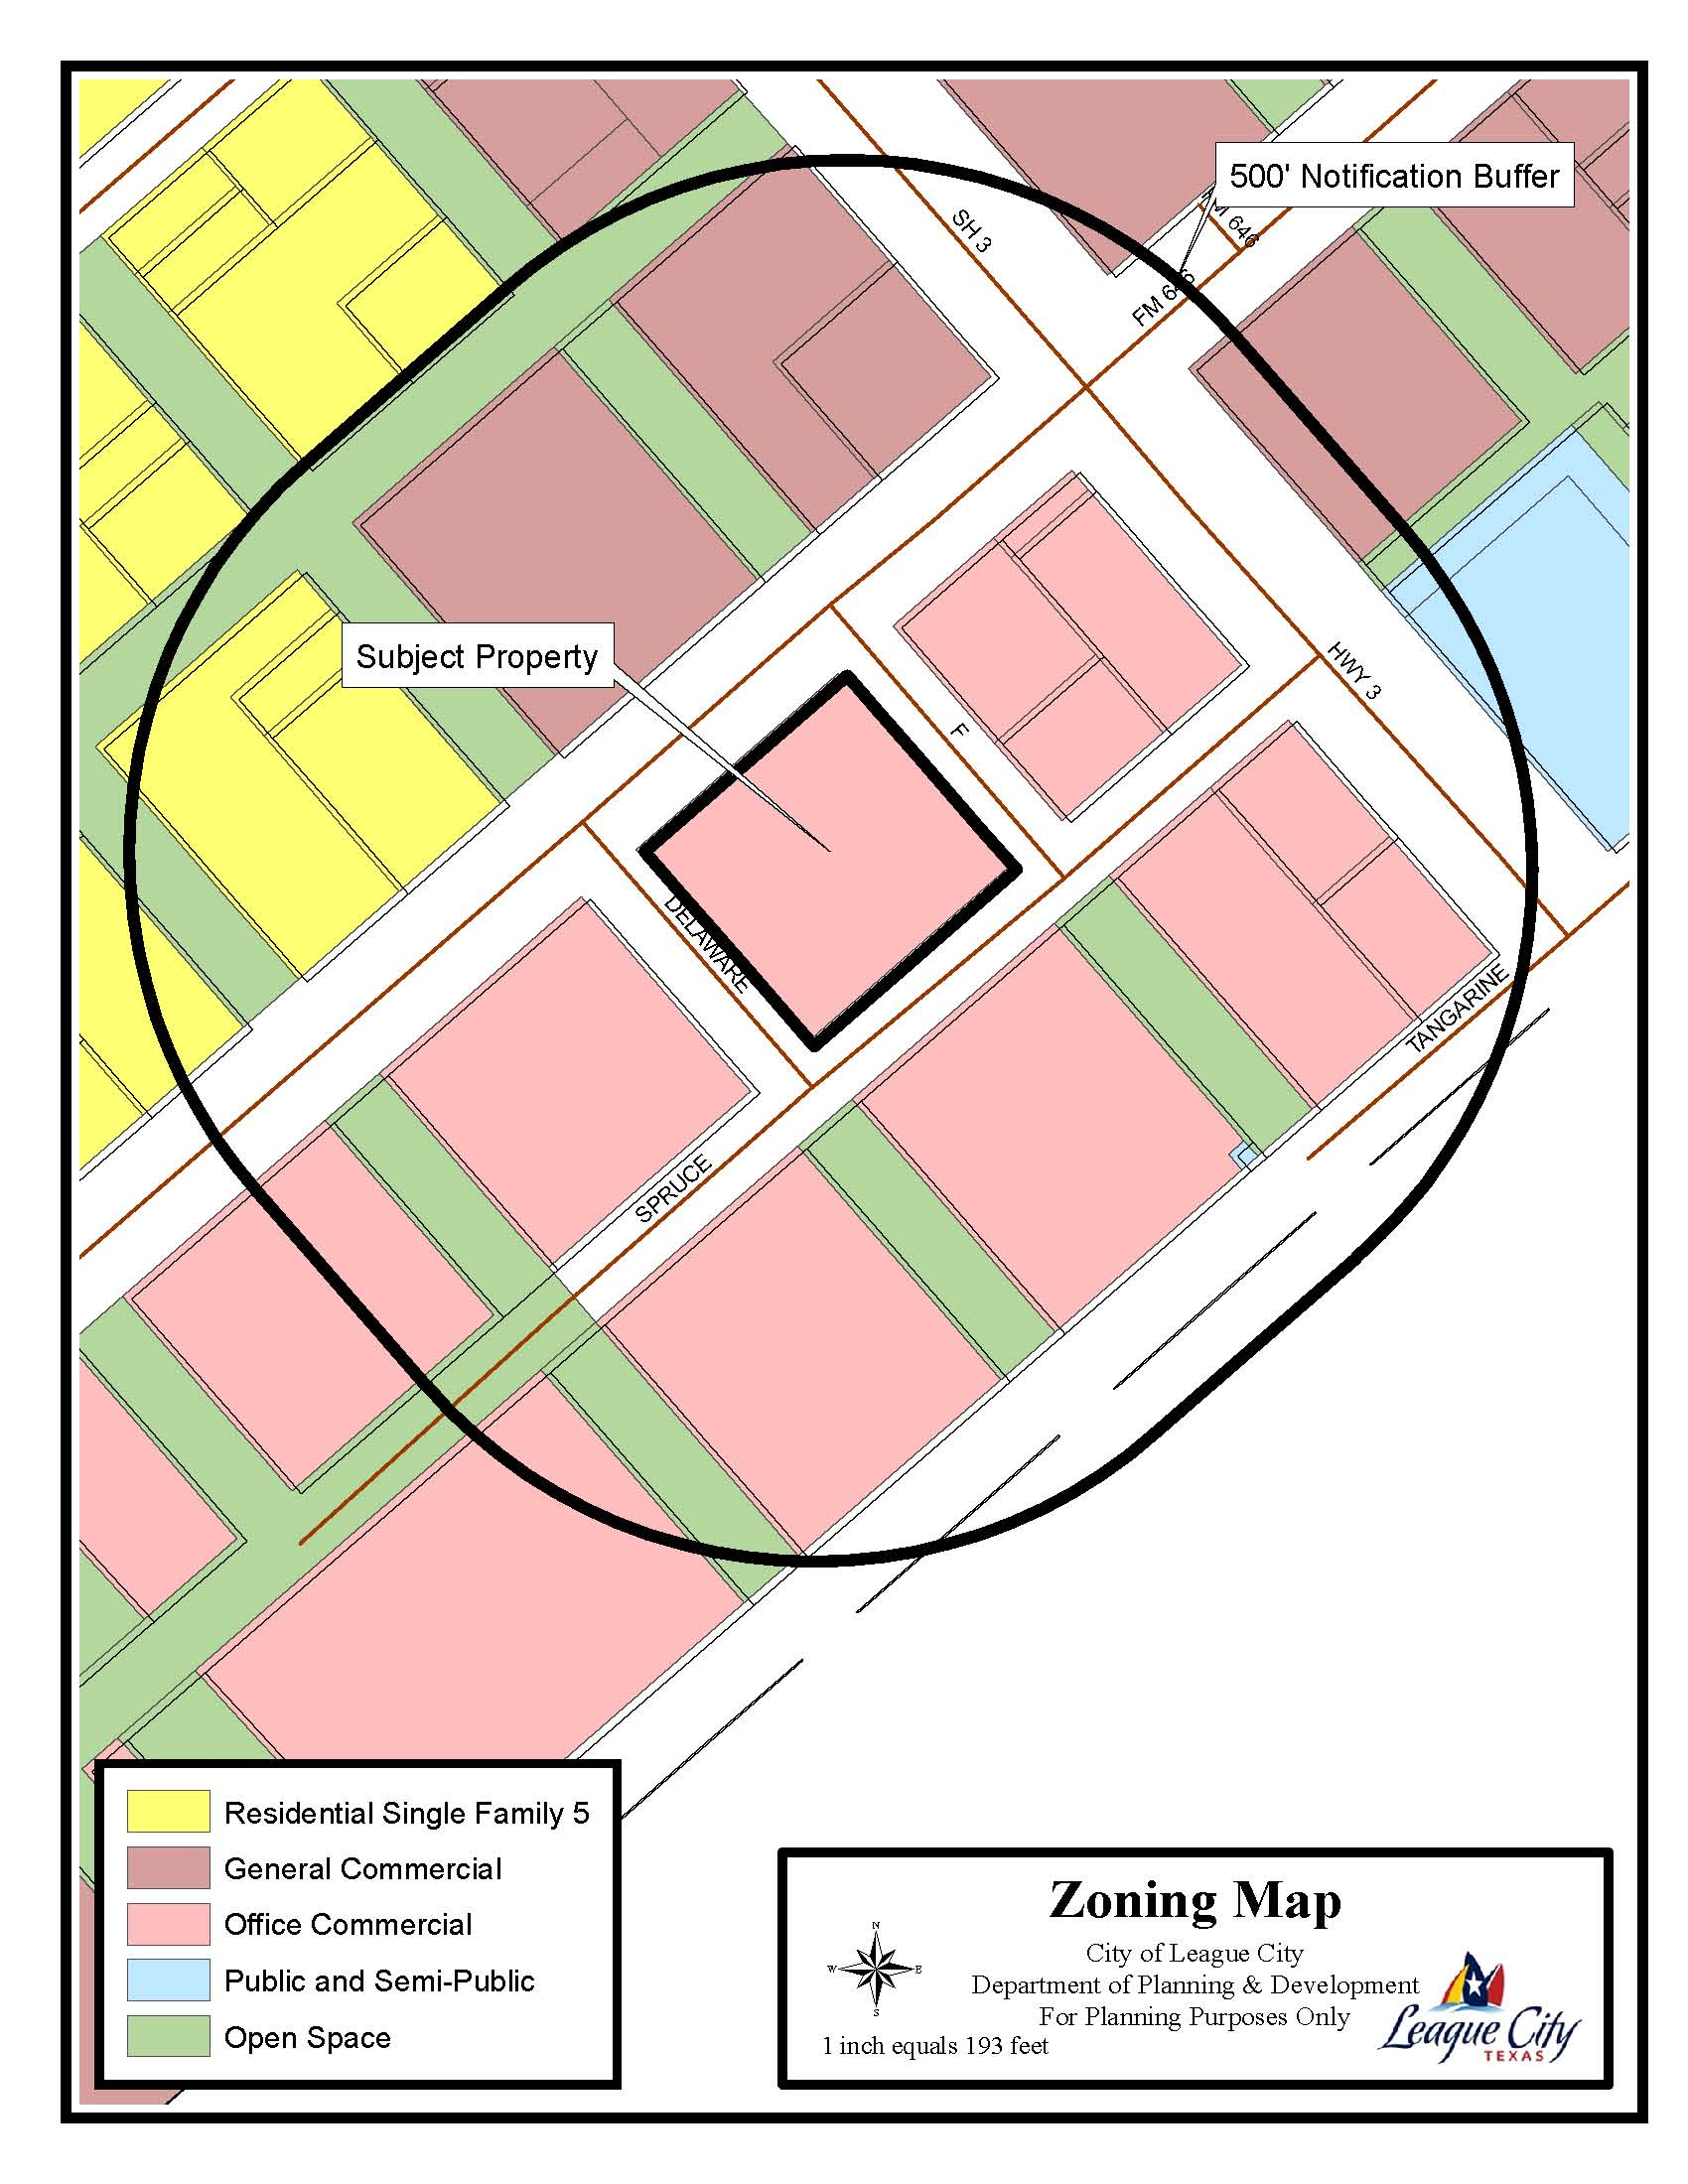 SUP15-09 Zoning Map